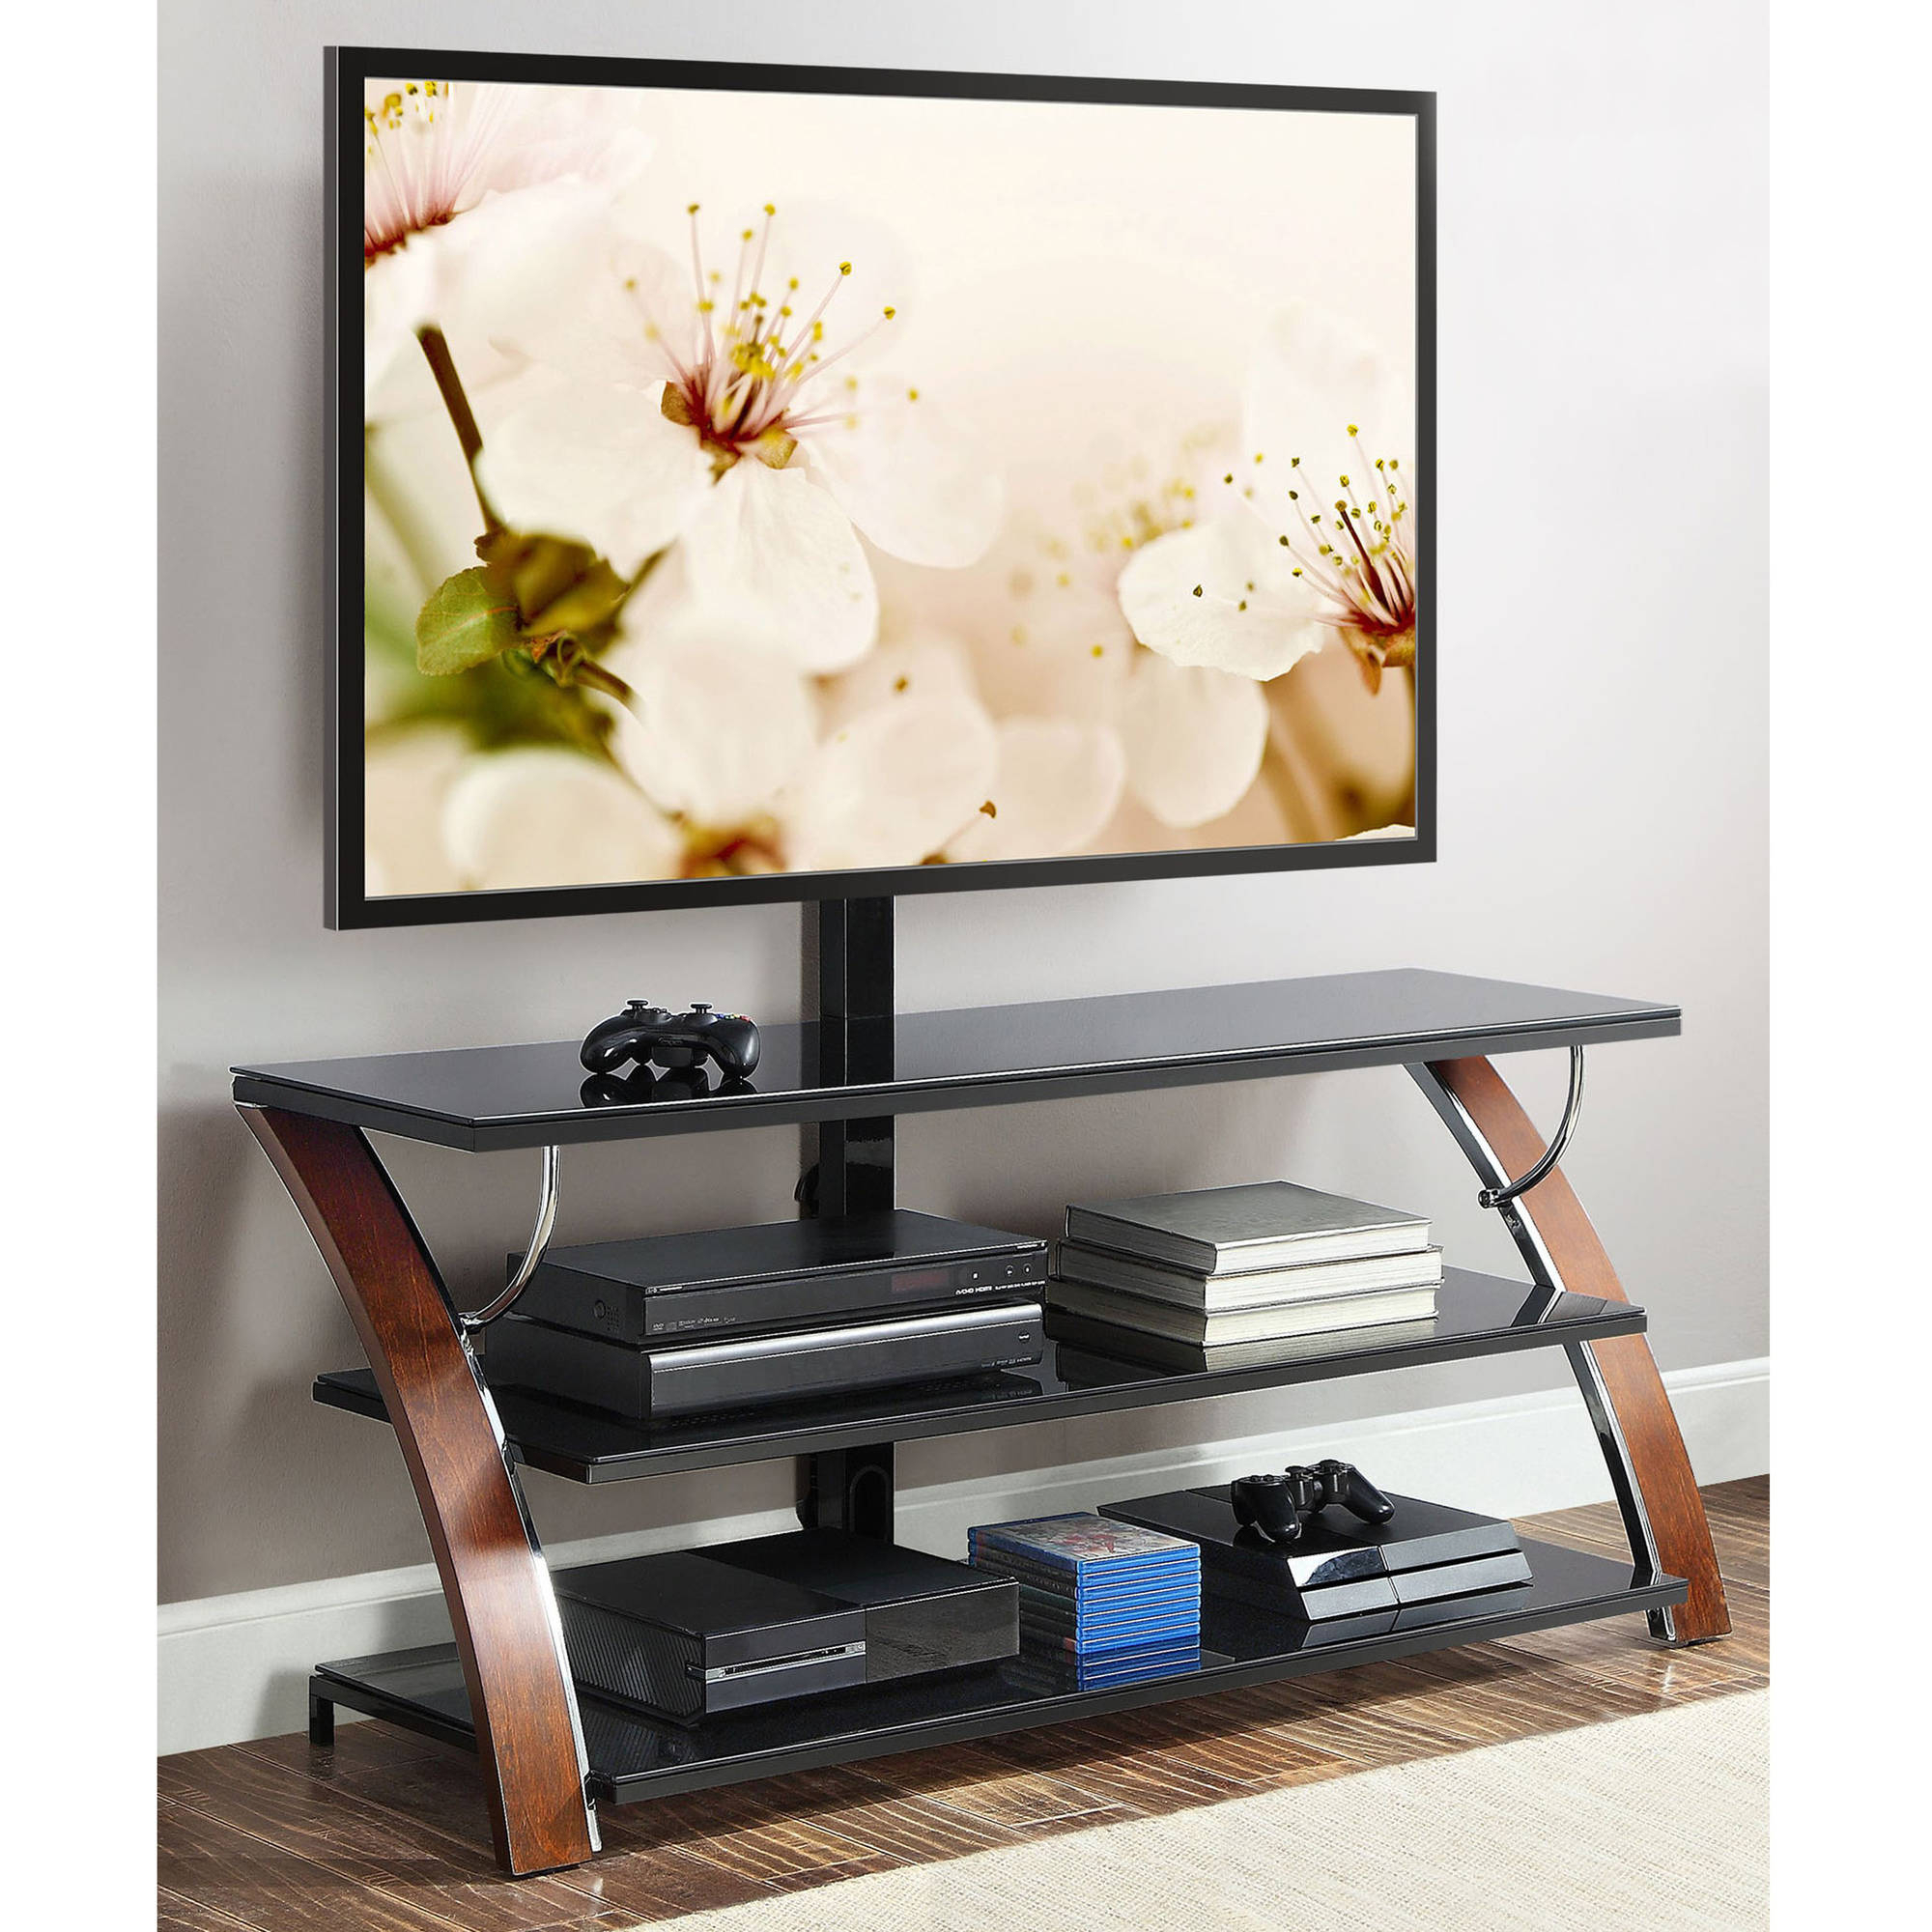 Whalen Payton Brown Cherry 3 In 1 Flat Panel Tv Stand For Tvs Up To With Regard To 2017 Contemporary Tv Stands For Flat Screens (View 19 of 20)